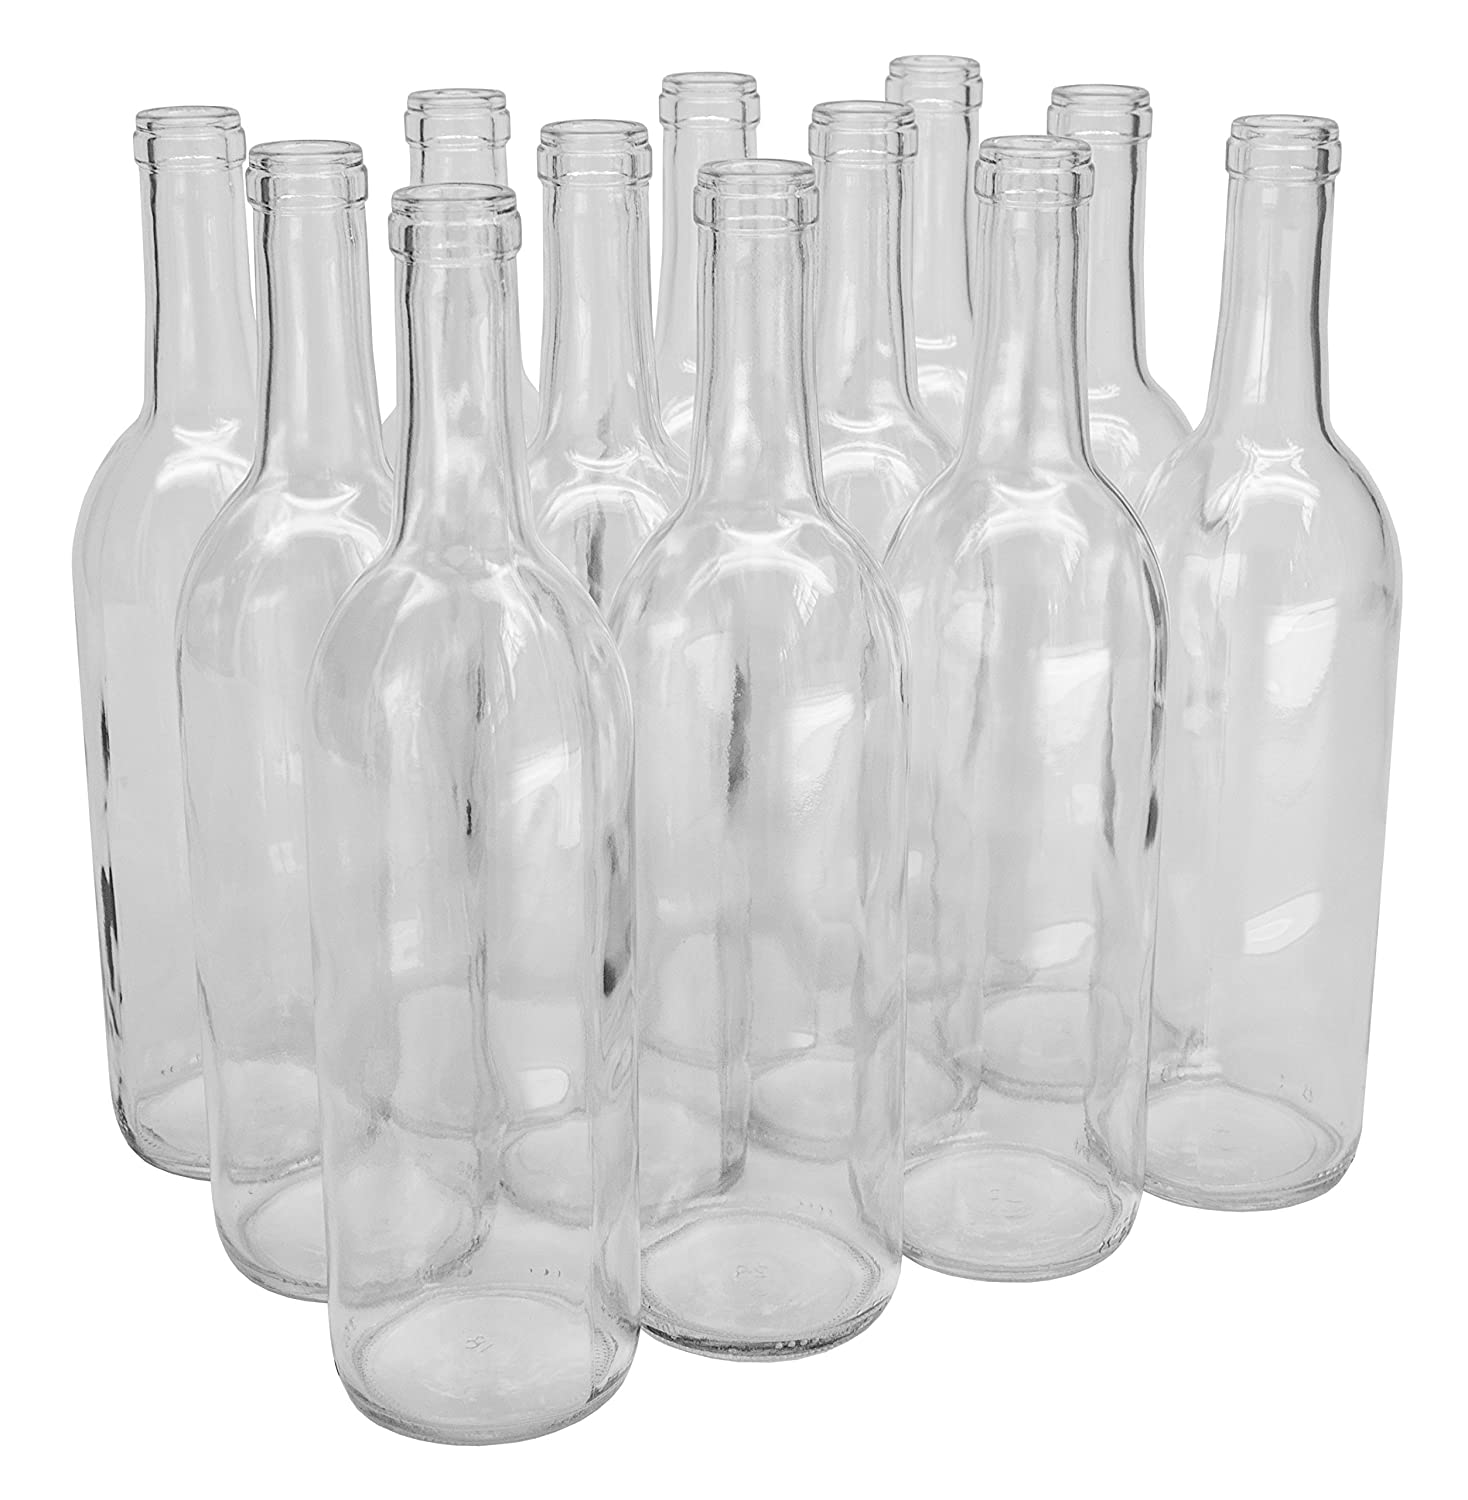 North Mountain Supply 750ml Glass Bordeaux Wine Bottle Flat-Bottomed Cork  Finish - Case of 12 - Clear/Flint